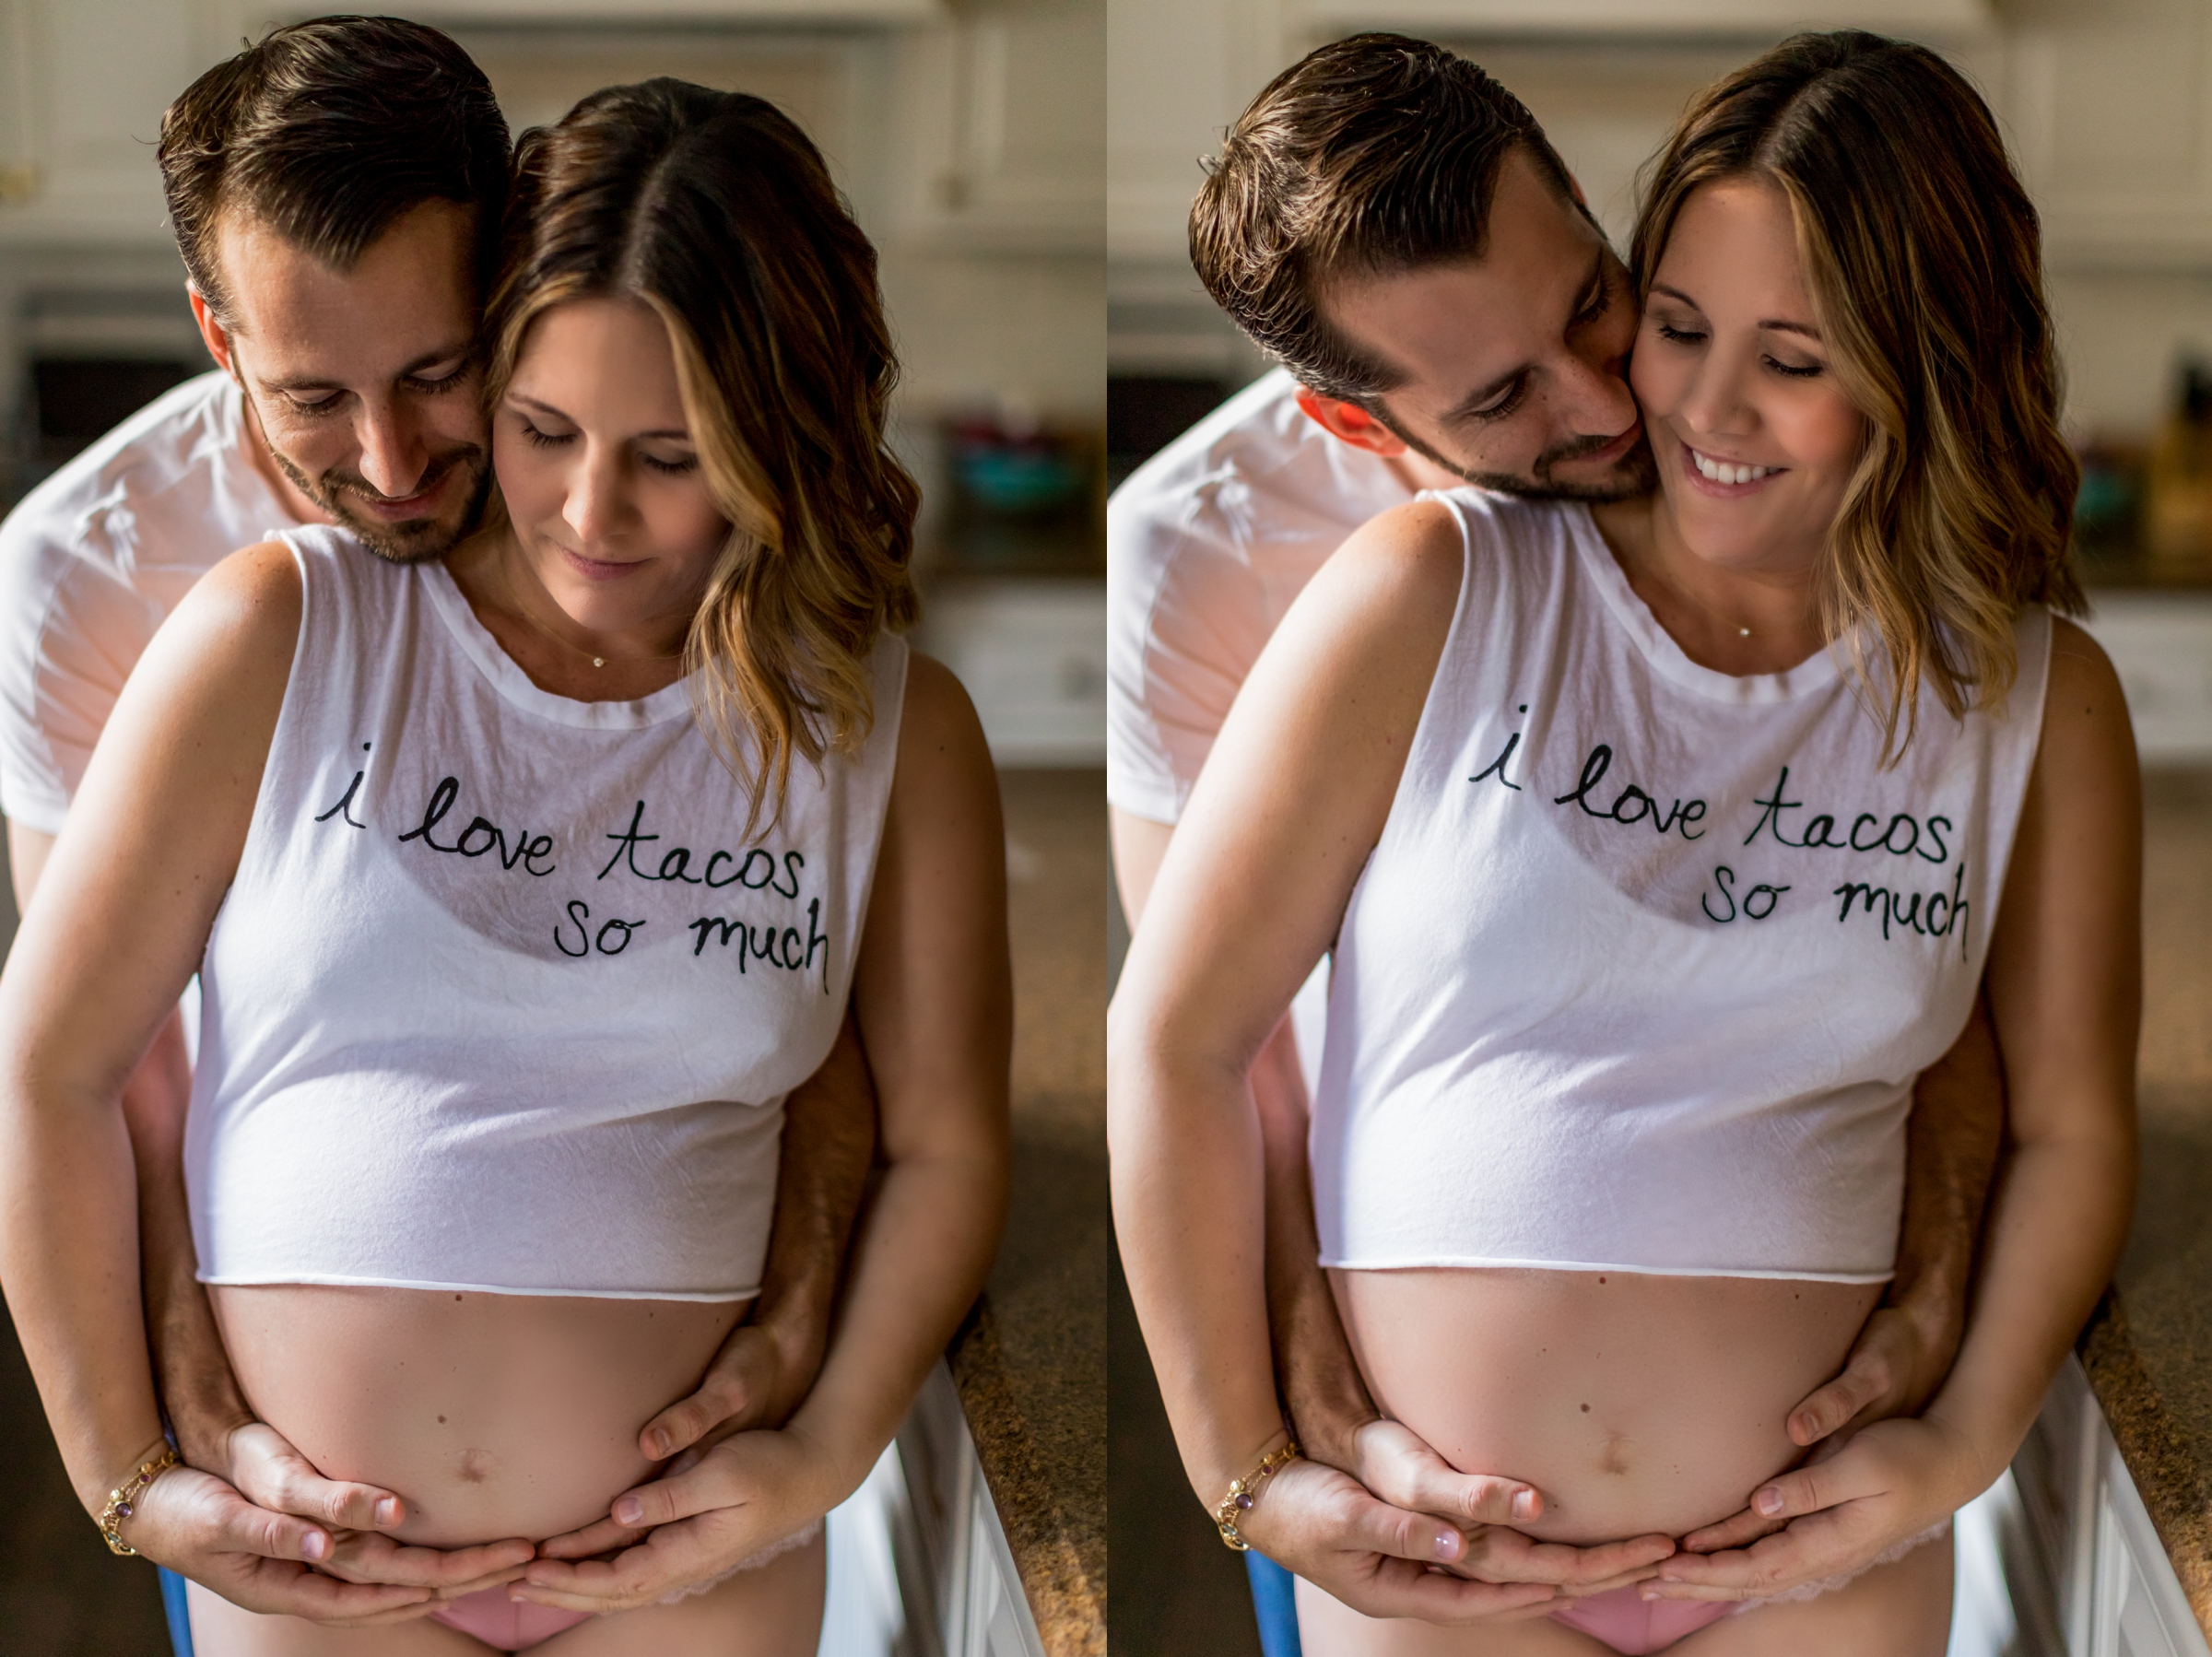 Lifestyle Maternity Portraits in Kitchen by Just Maggie Photography - Los Angeles Maternity and Newborn Photographer